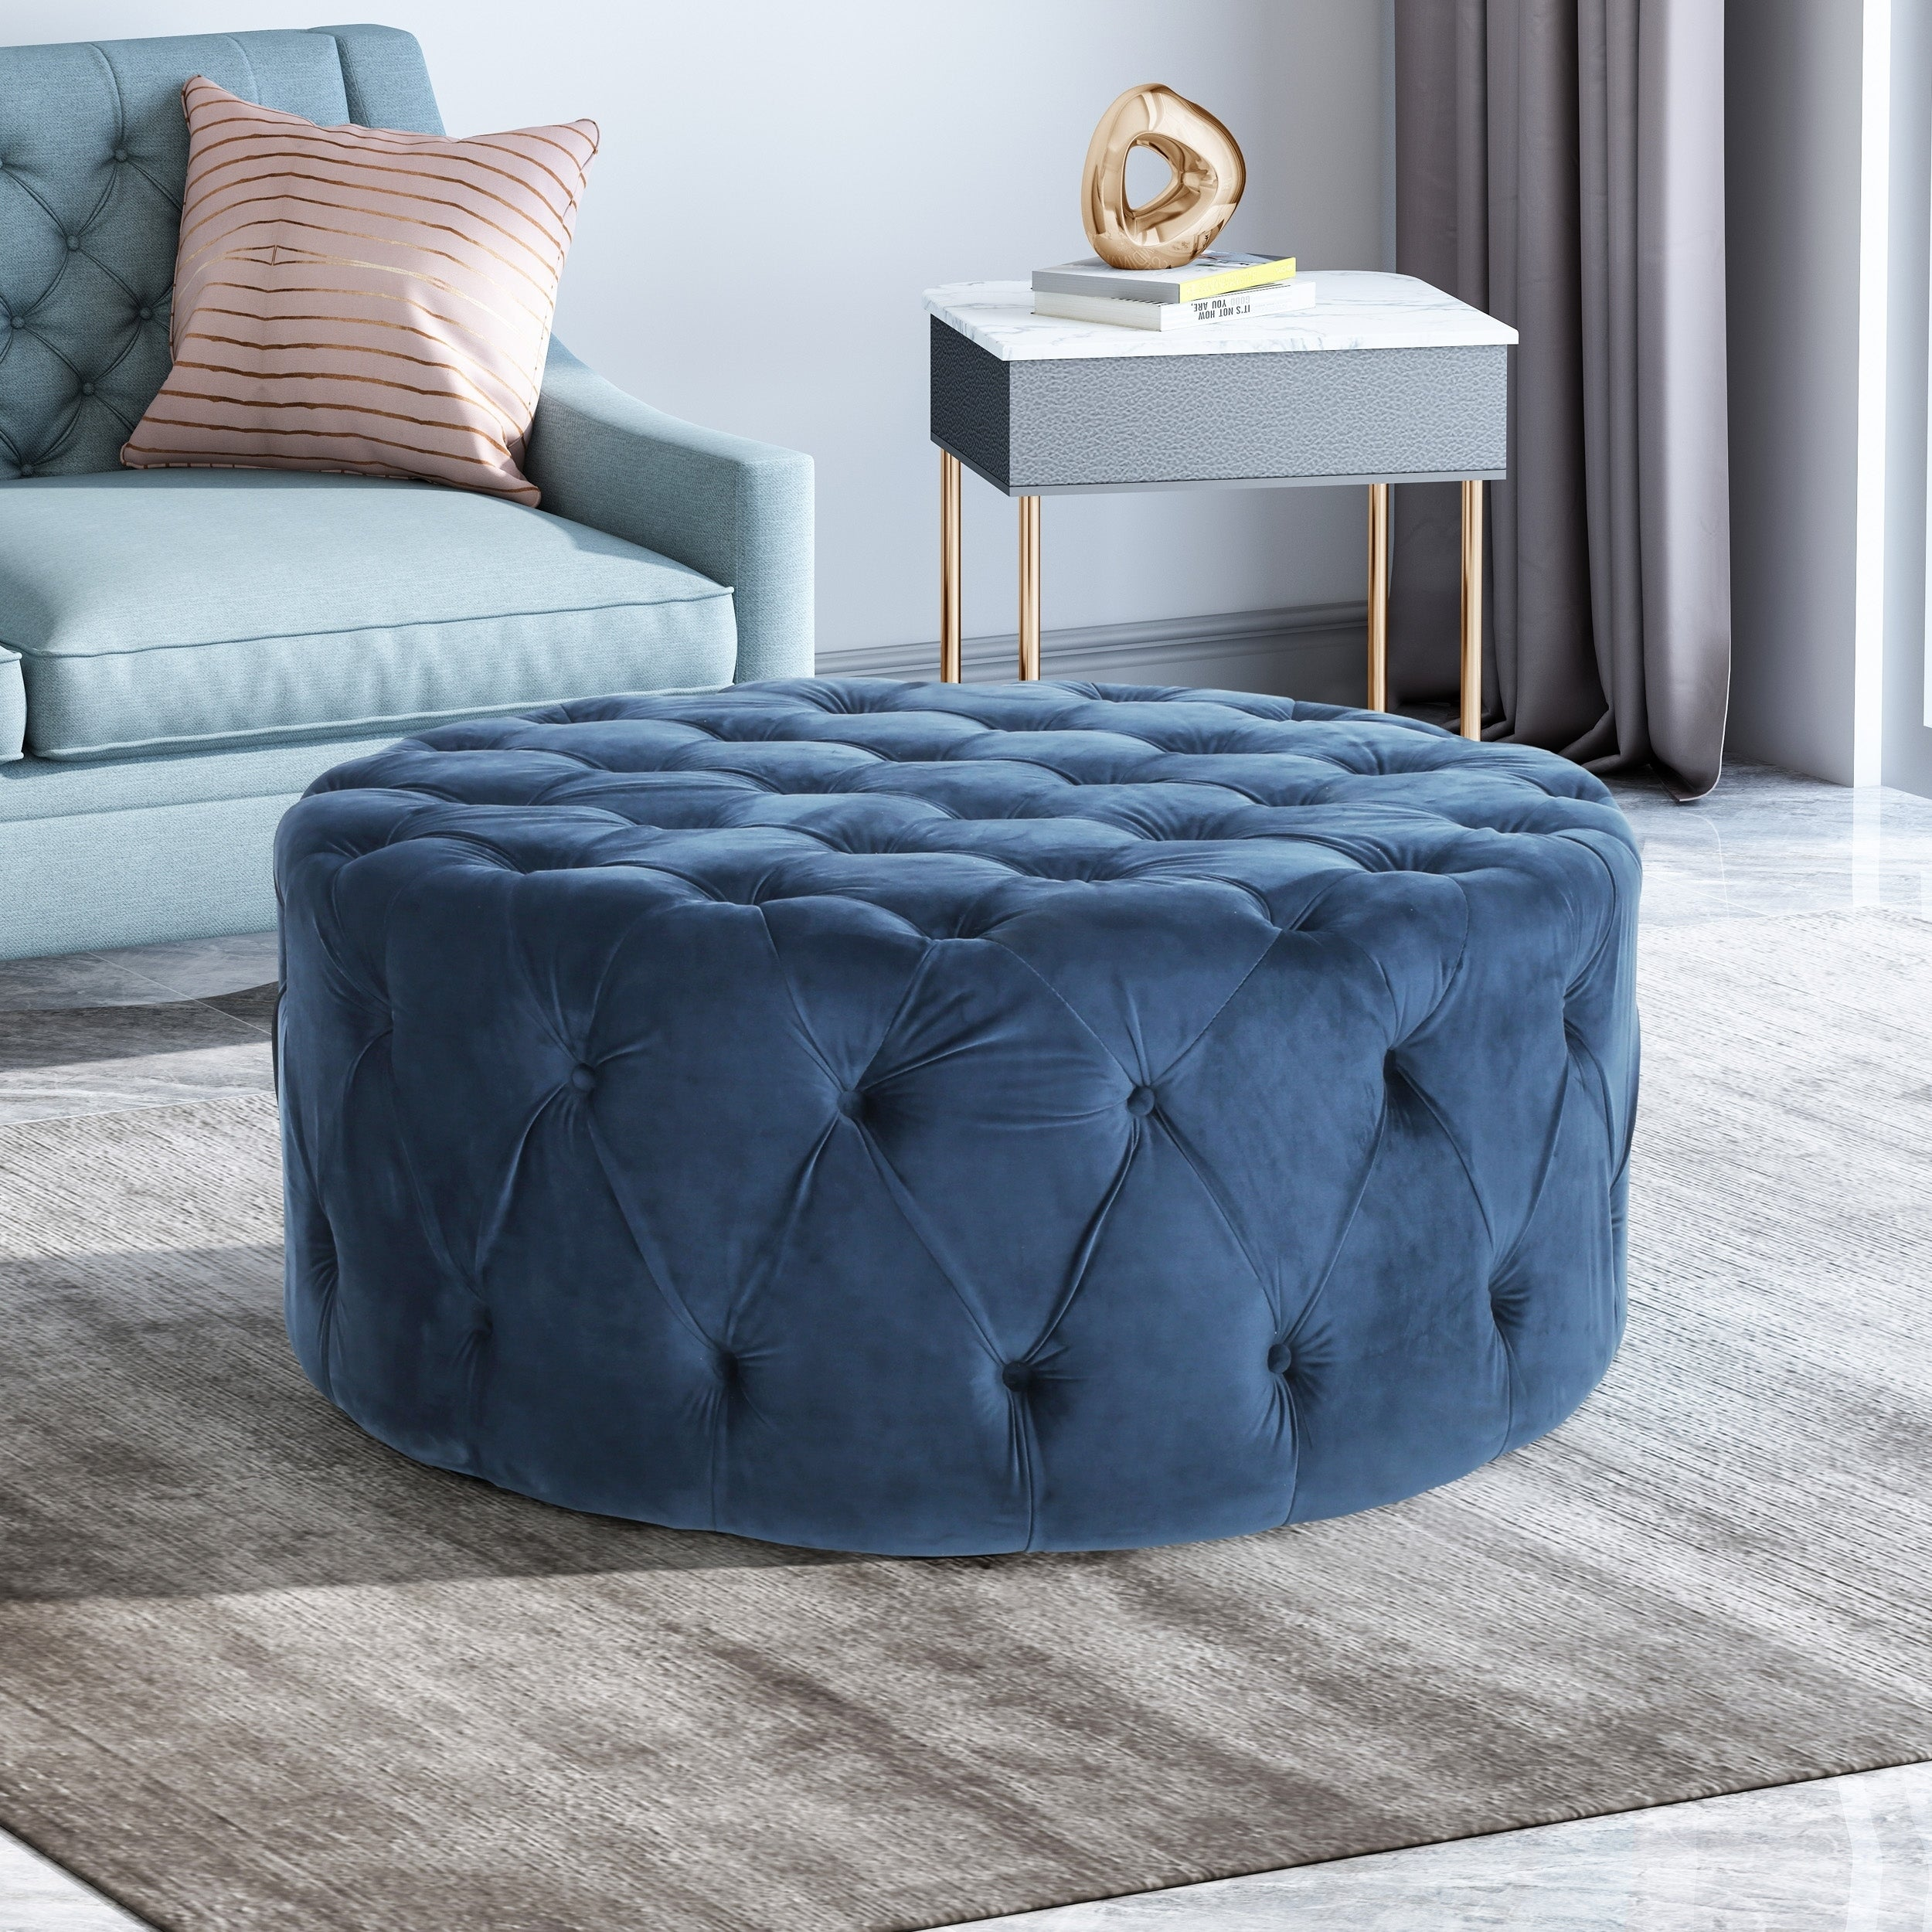 Home Furniture Diy Pink Grey Green Deep Button Footstool Footrest Chesterfield Ottoman Coffee Table Kisetsu System Co Jp